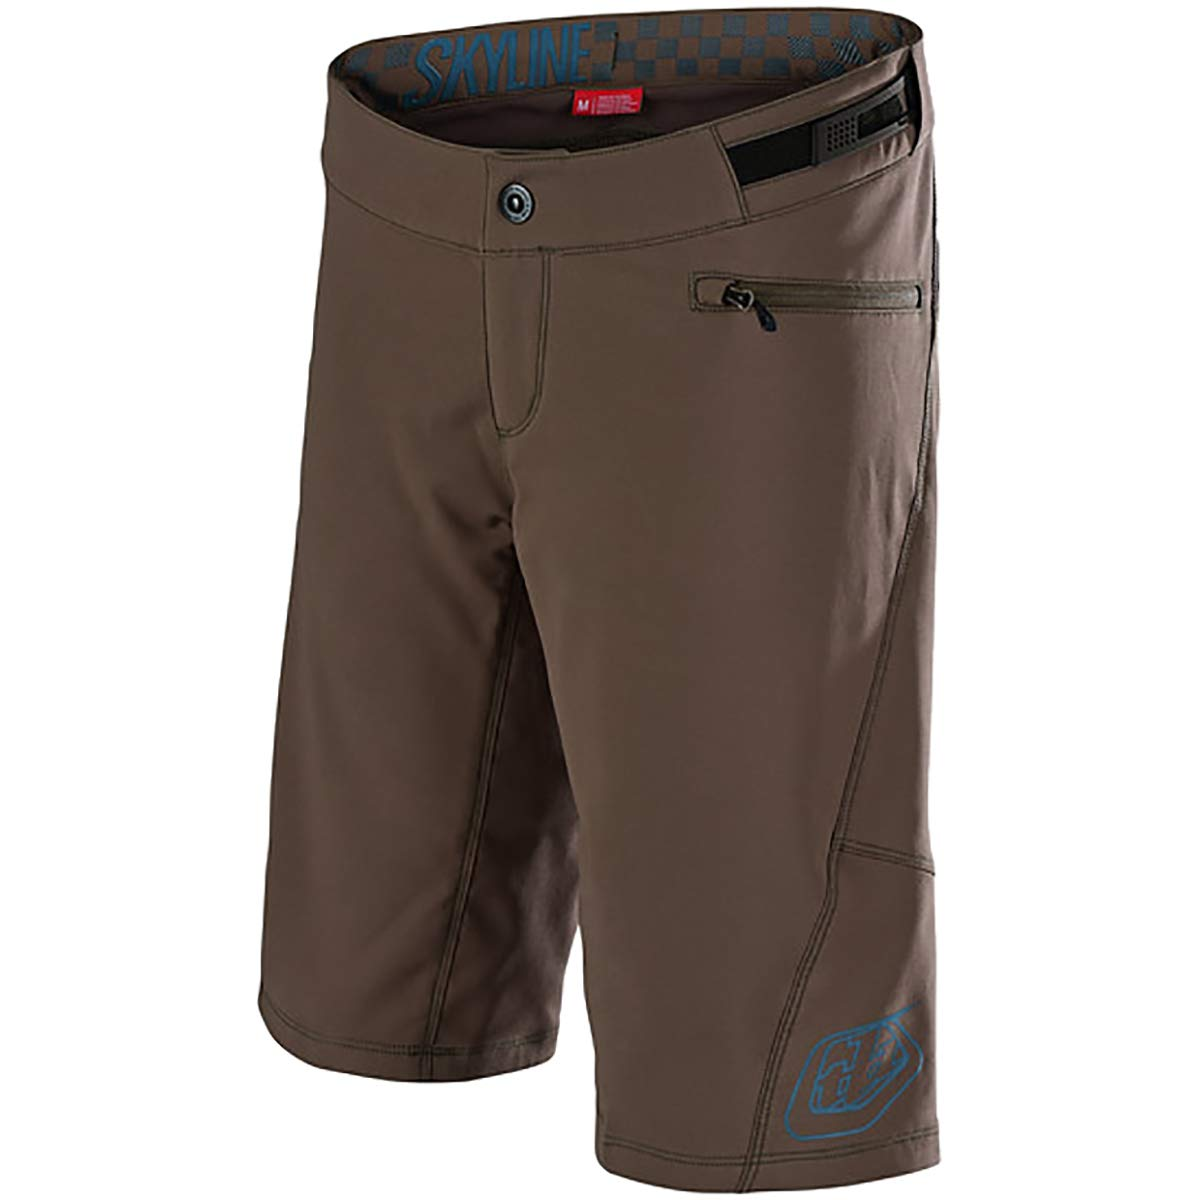 Troy Lee Designs Skyline Short - Women's Solid Moka/Corsair, S by Troy Lee Designs (Image #1)